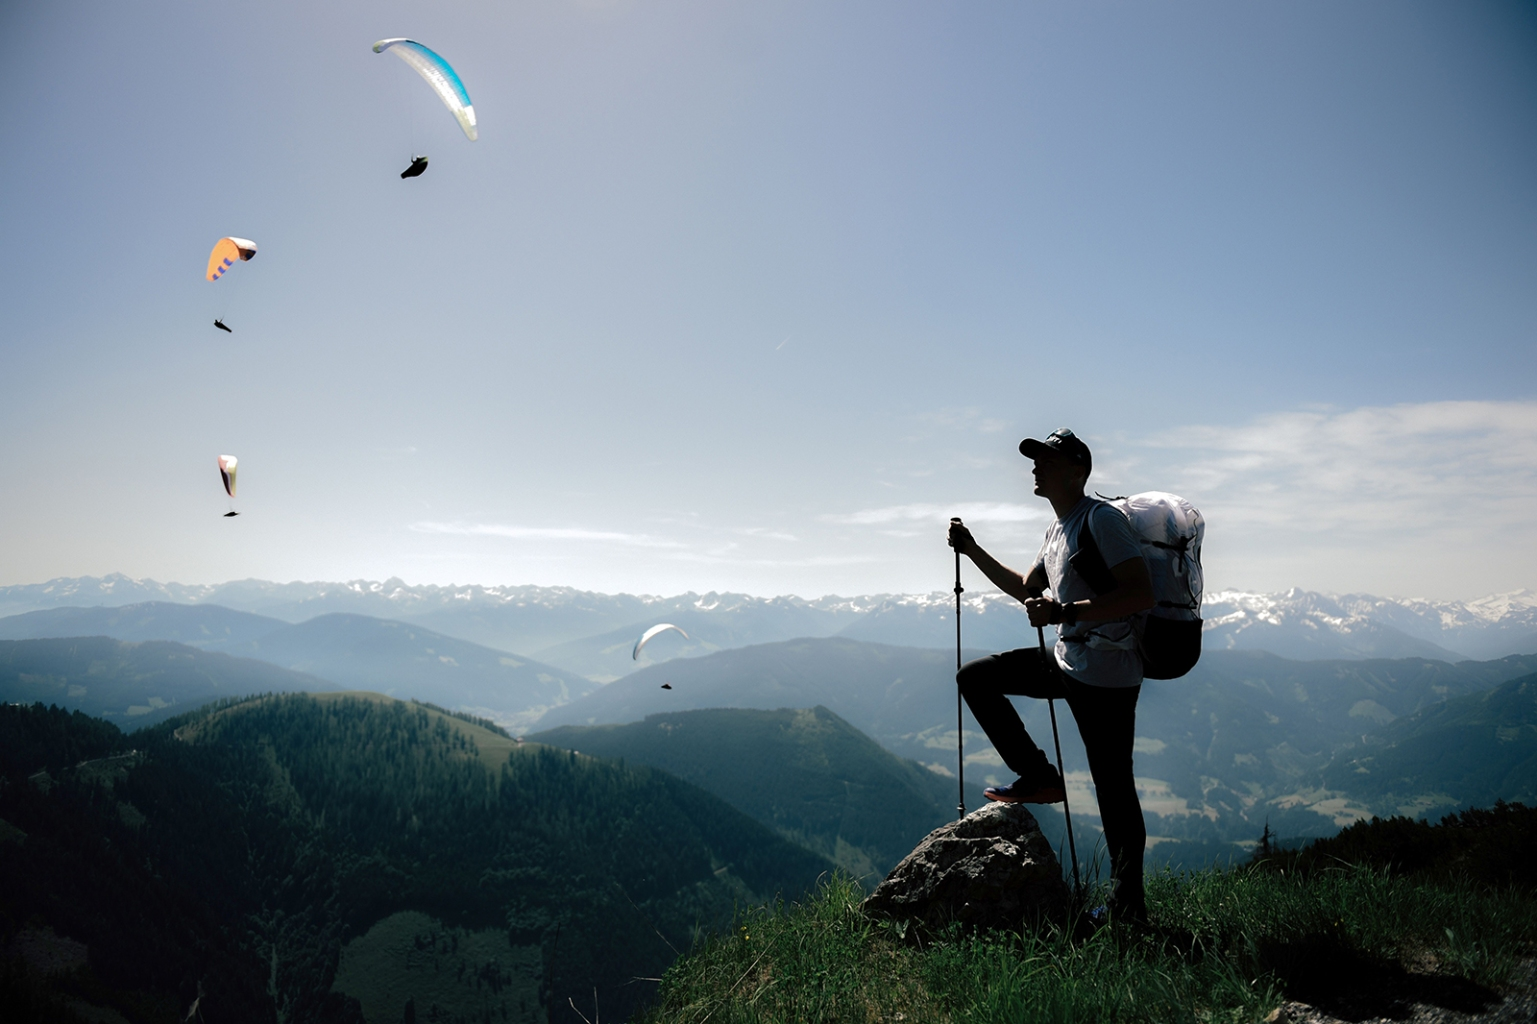 French athlete Benoit Outters looks at paragliders flying during a training session prior to the Red Bull X-Alps race in Bergbahnen Werfenweng, western Austria, on June 14. The race crosses the borders of six countries covering alpine terrain only on foot and by paragliding. LUCAS BARIOULET/AFP/Getty Images